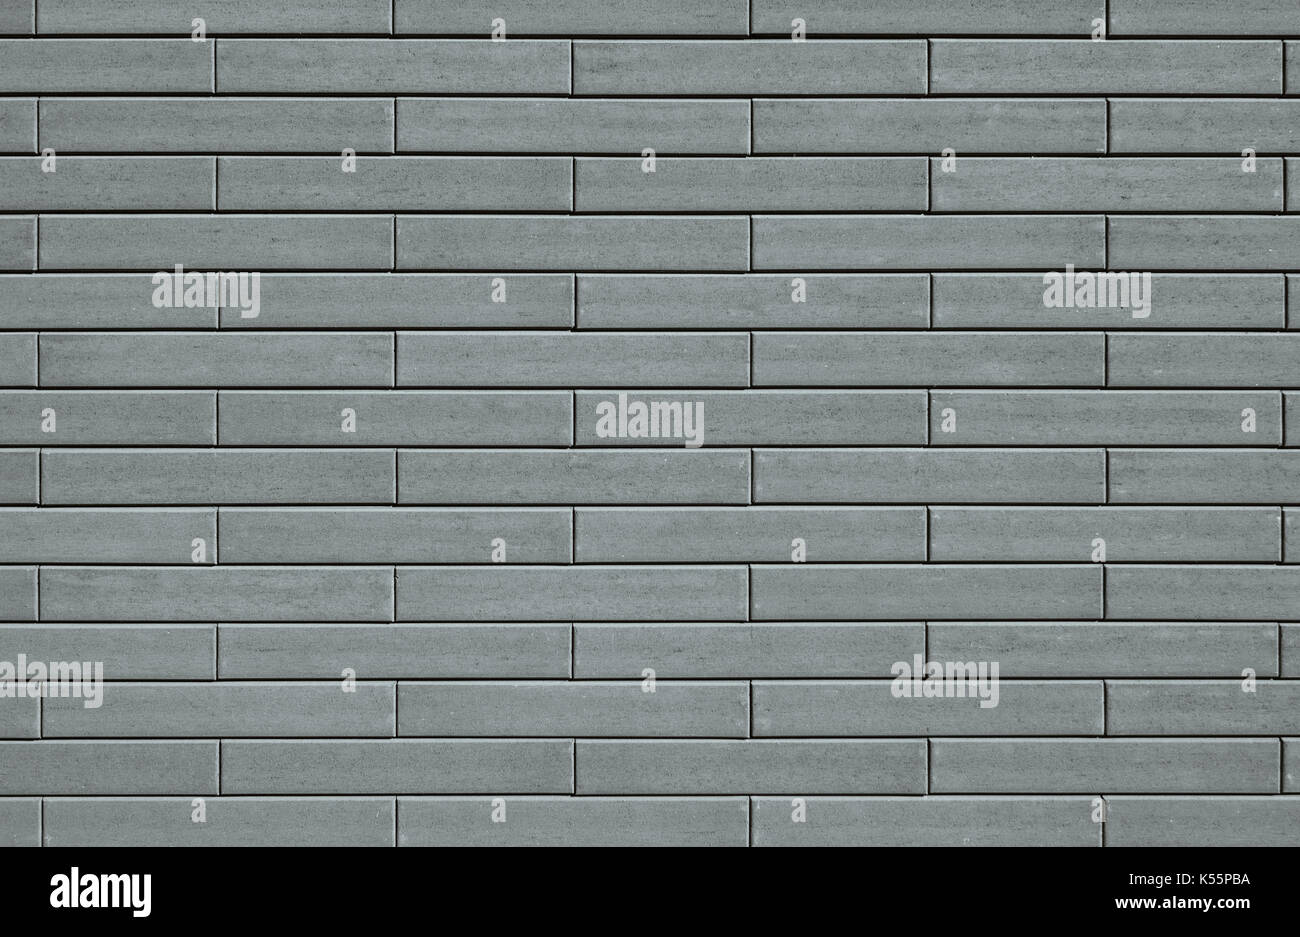 Template background with a wall texture made from gray decorative bricks. - Stock Image